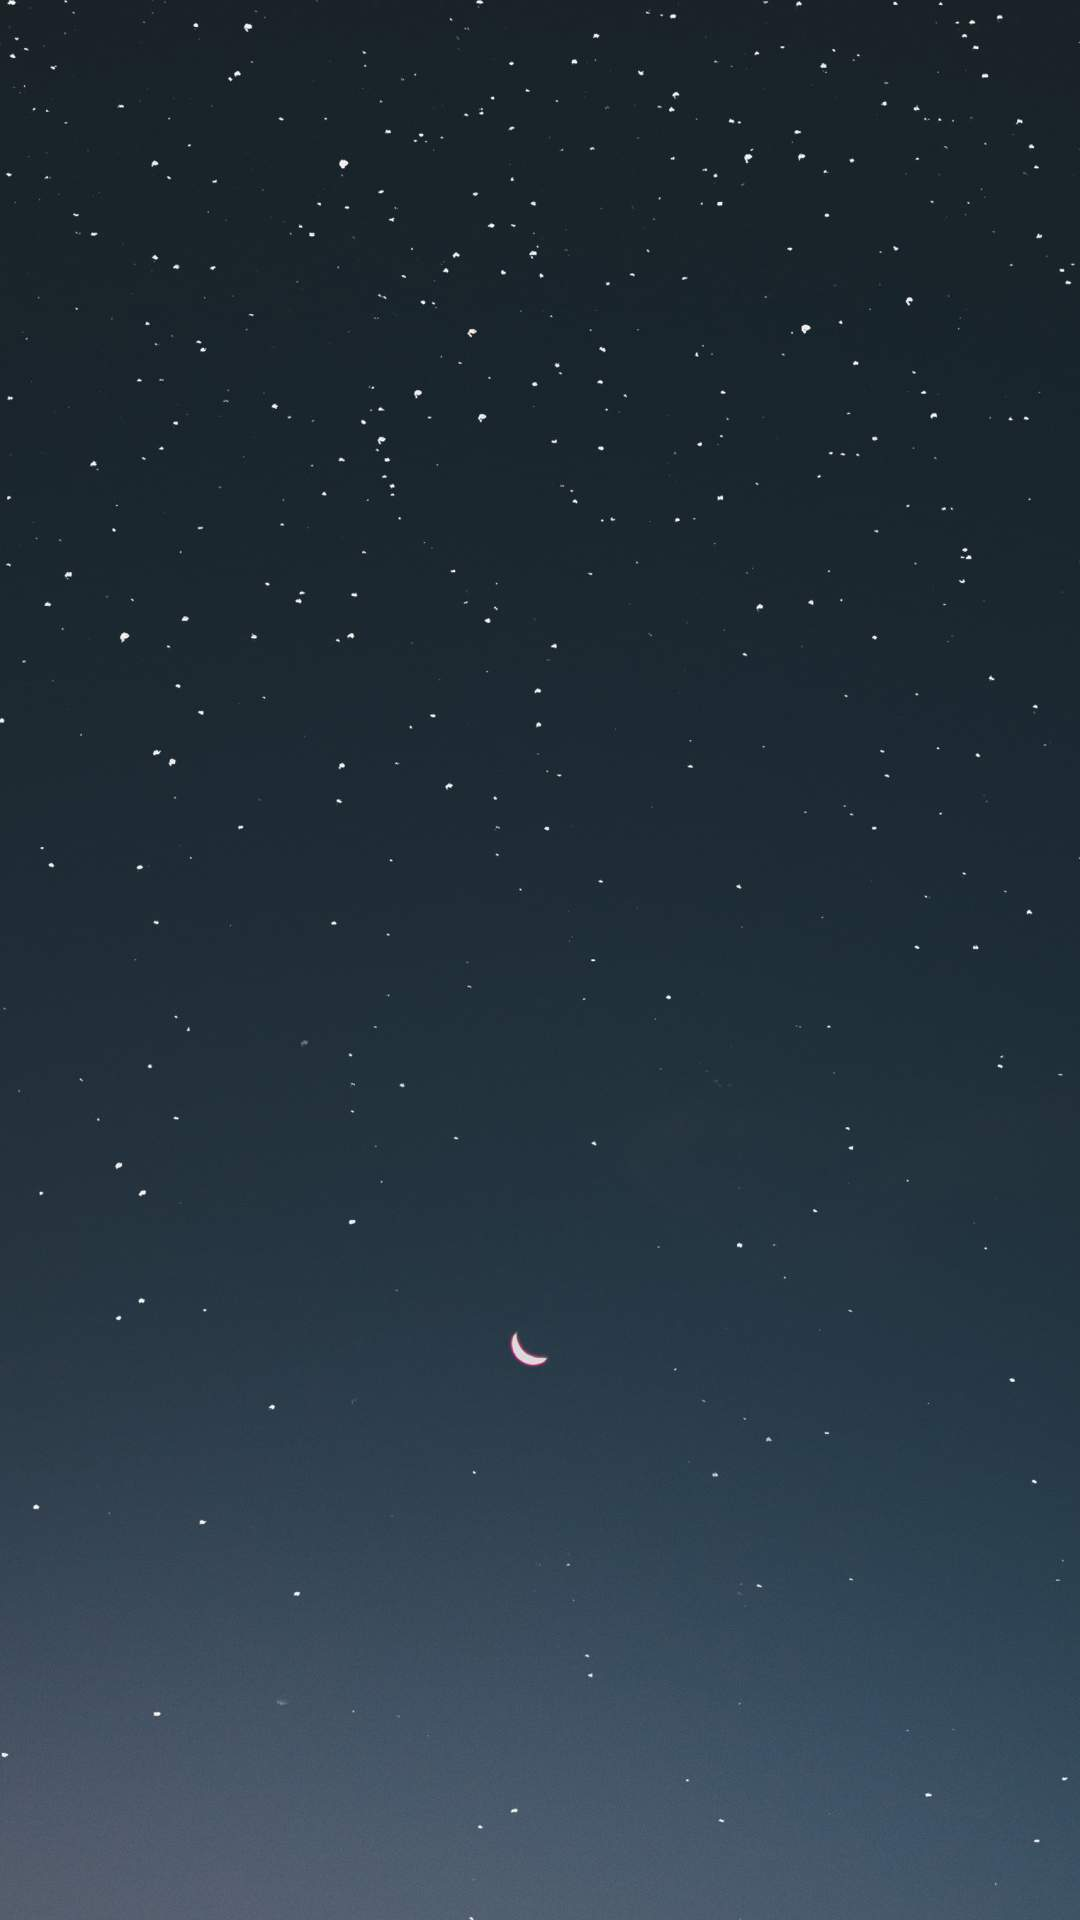 Moon and Stars iPhone Wallpaper